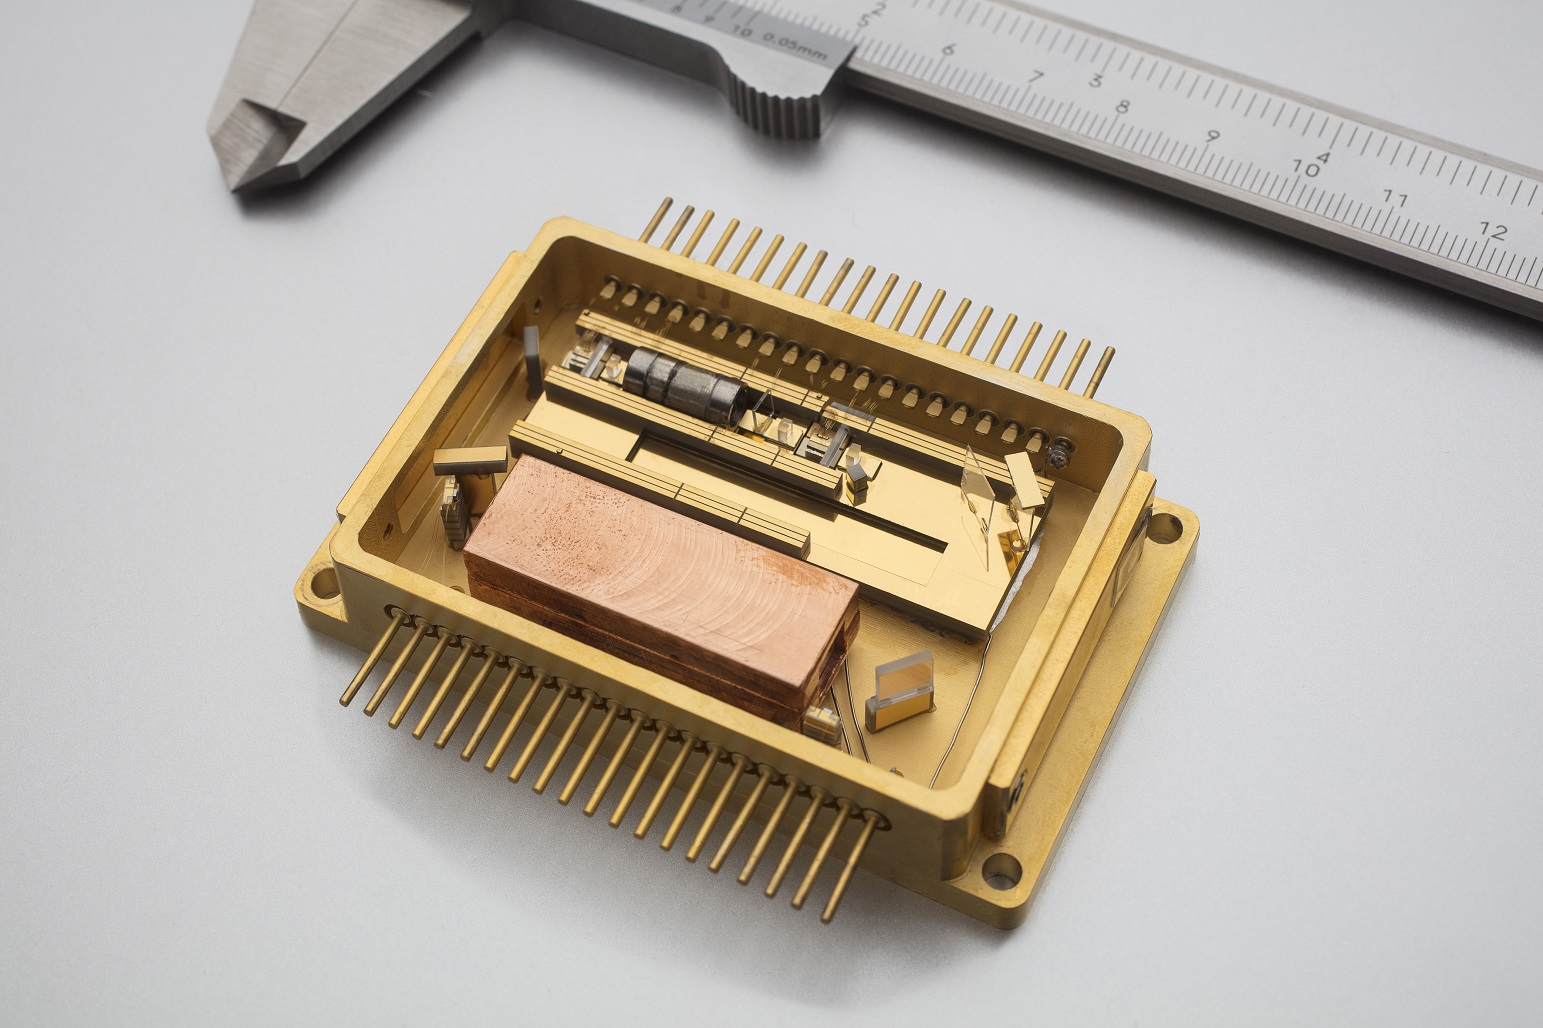 Compact laser module with outstanding frequency stabilization